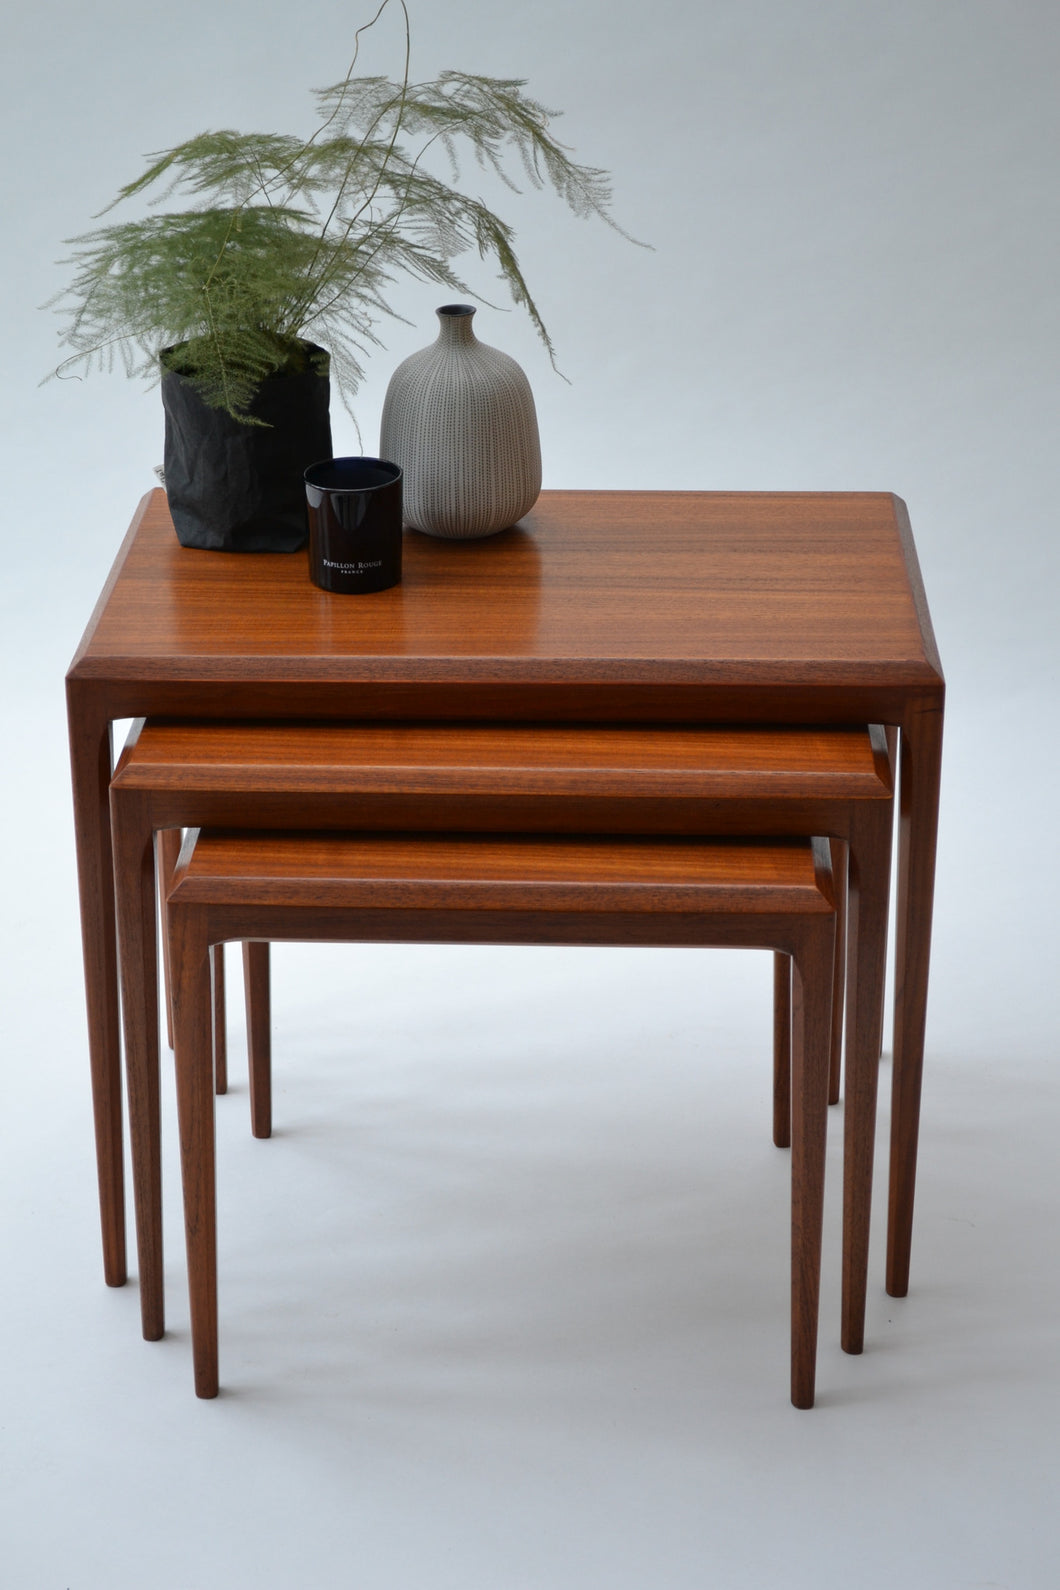 Set of Danish Teak Nesting Tables by Johannes Anderson for CFC Silkeborg - SOLD